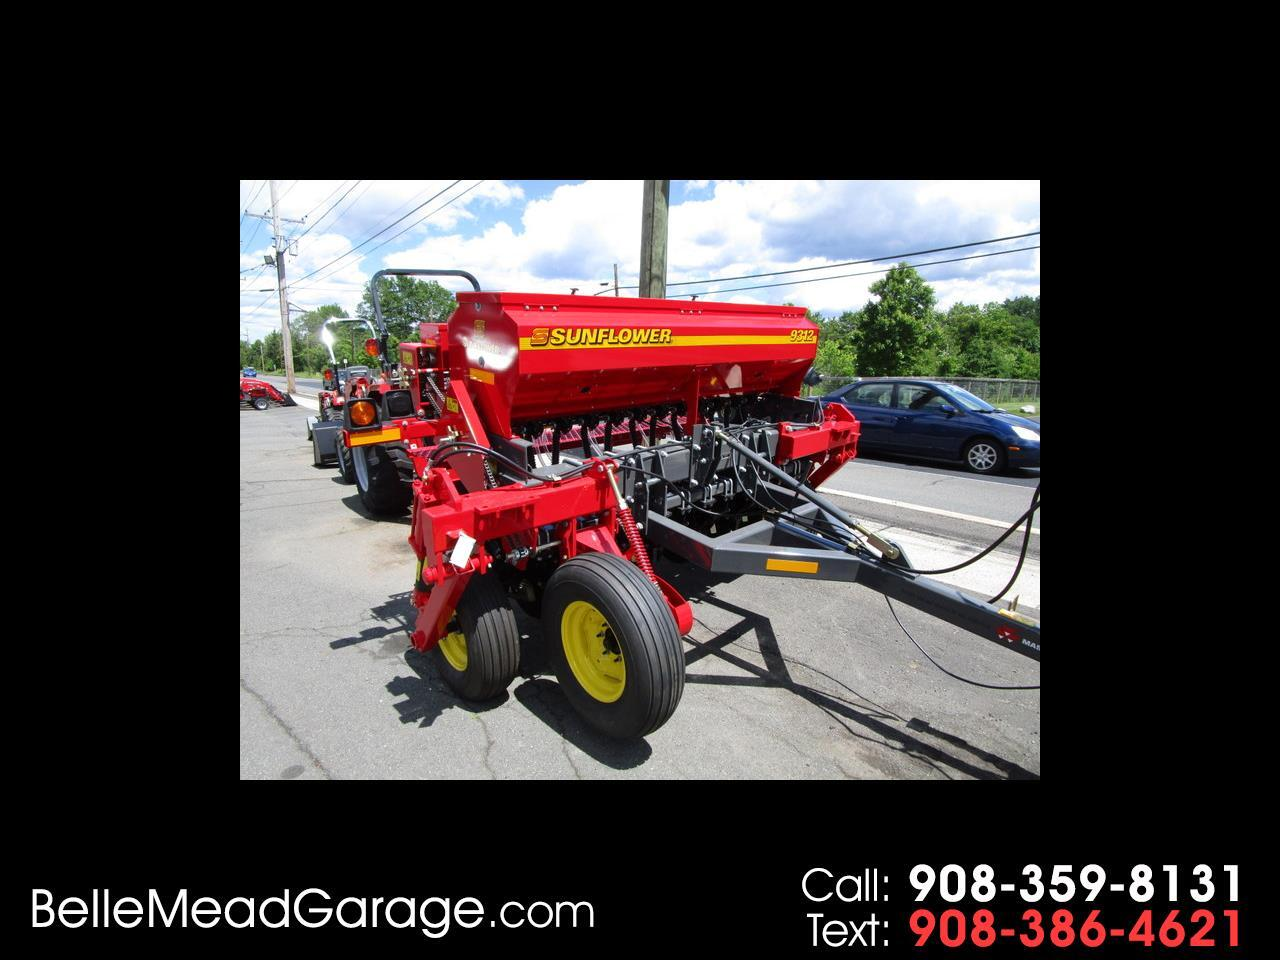 2019 Massey Ferguson Farm SUNFLOWER GRAIN DRILL 9312-07